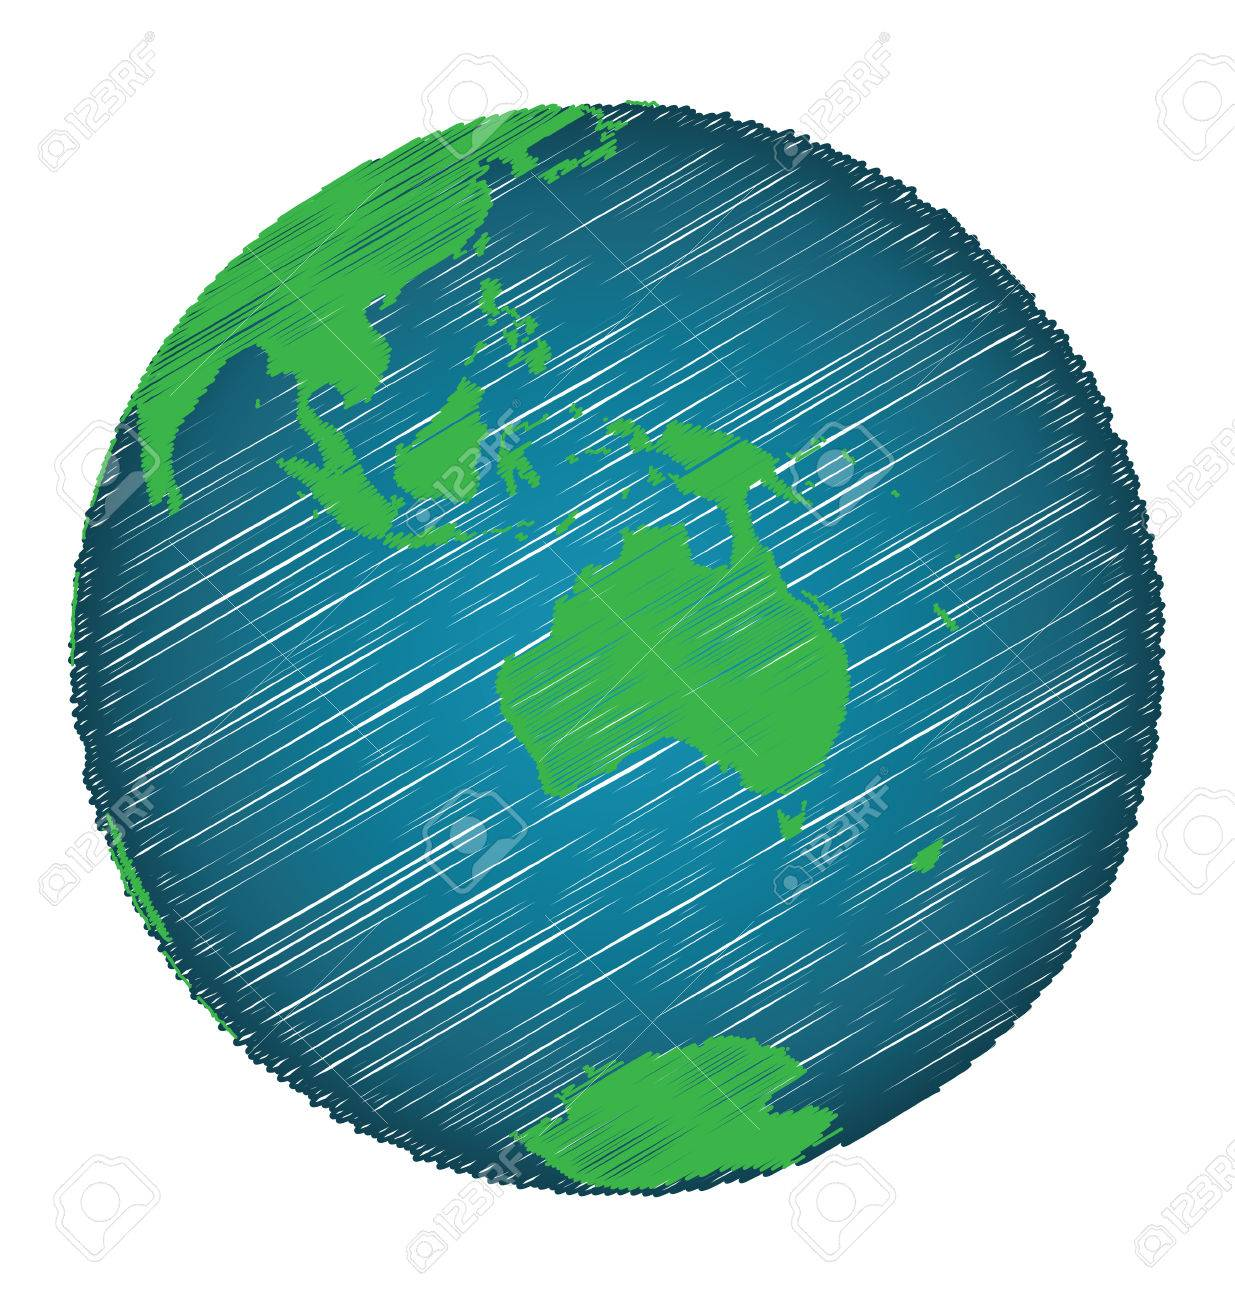 Earth sketch hand draw focus australia continent credit world earth sketch hand draw focus australia continent credit world map of nasa stock vector gumiabroncs Gallery